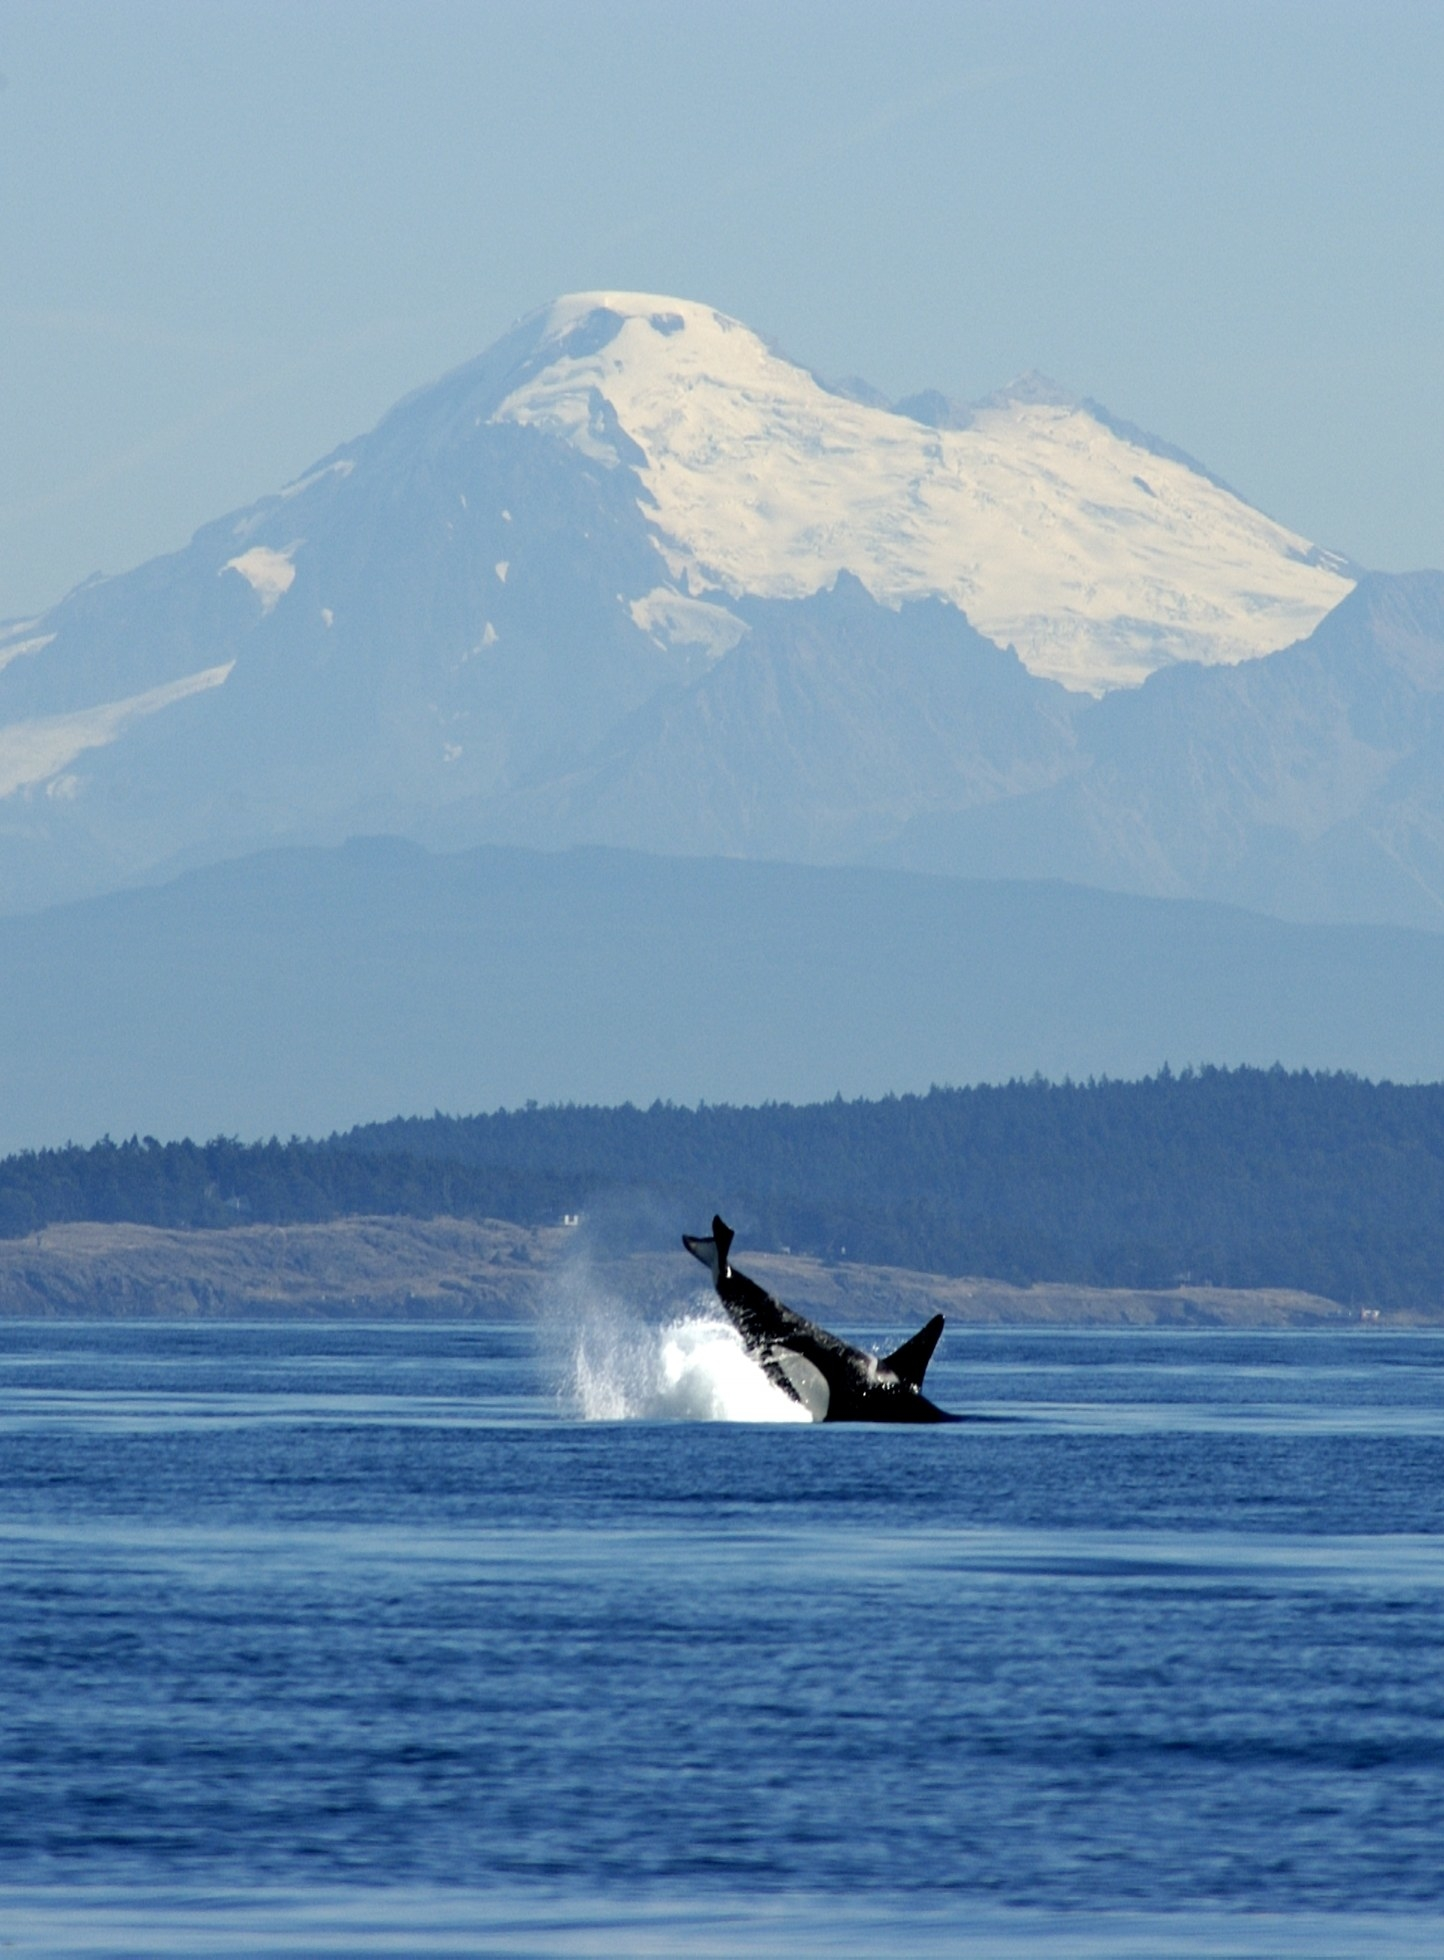 A killer whale breaches off the west coast of San Juan Island with Mount Baker as a backdrop